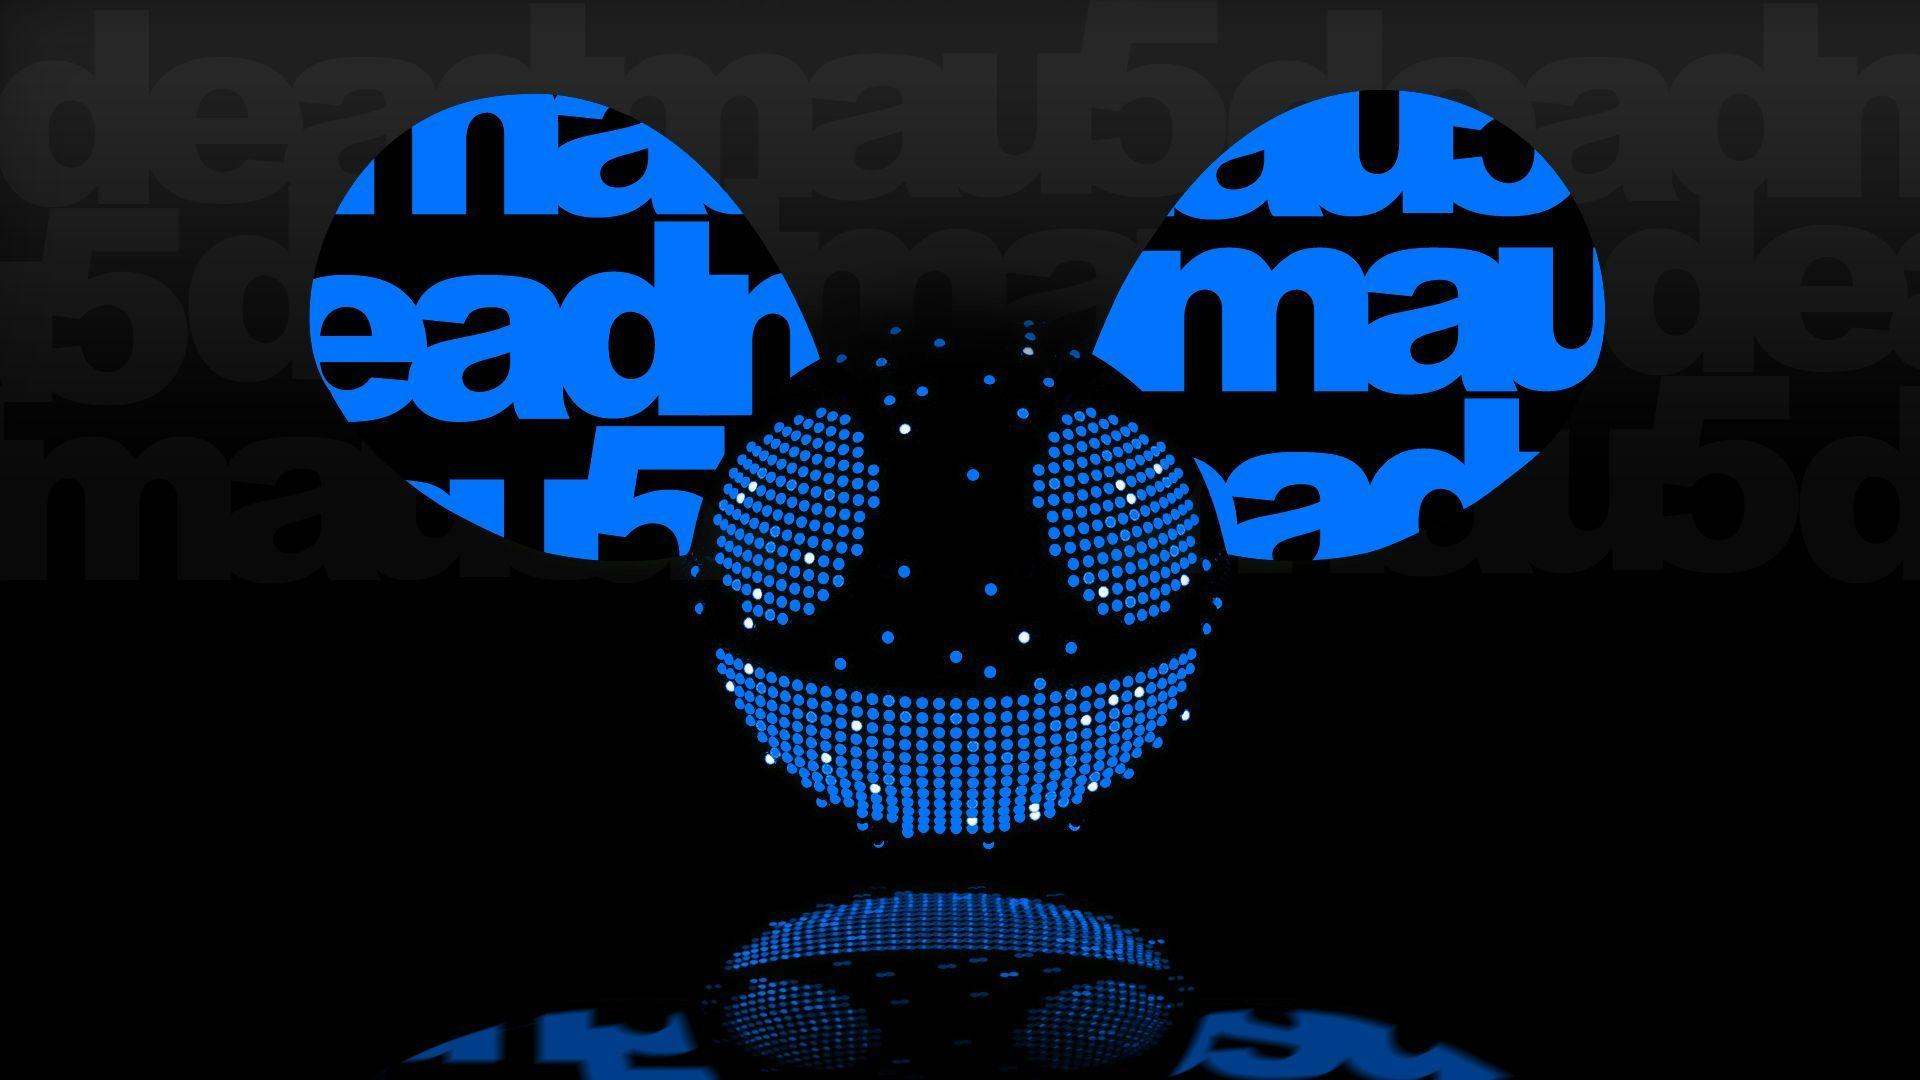 Deadmau5 HD Wallpapers - Wallpaper Cave